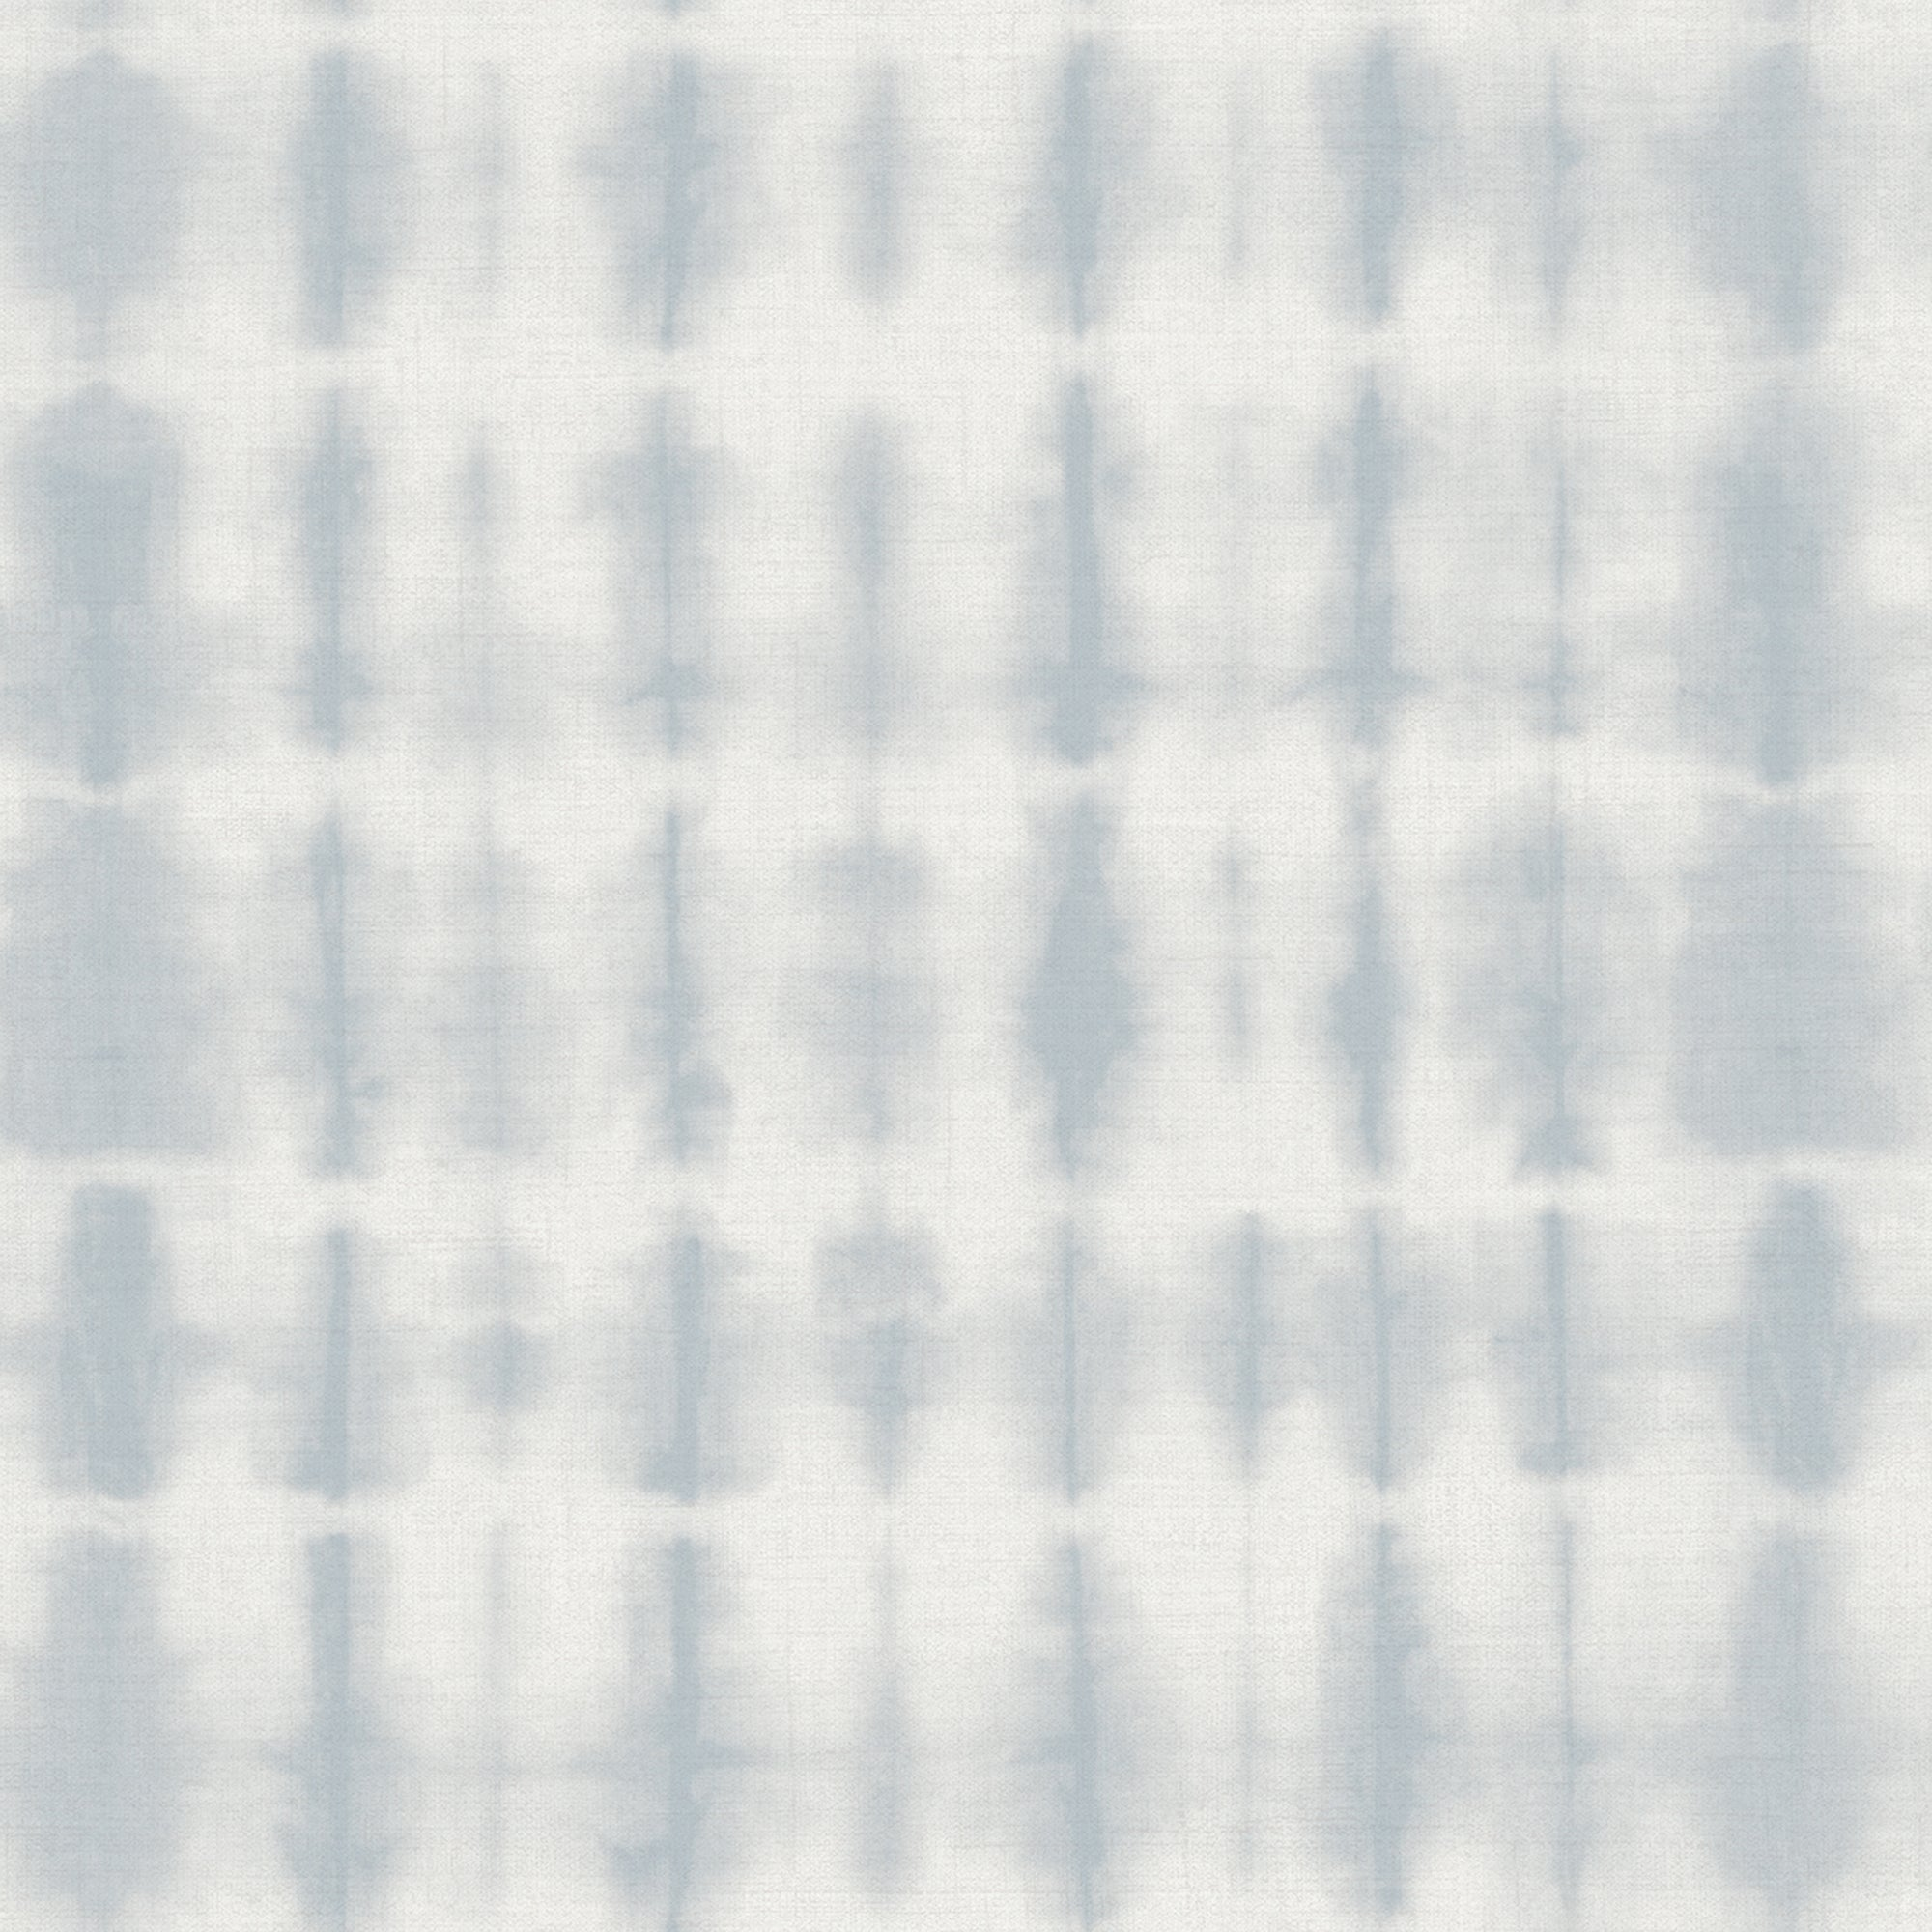 Powder Blue And Sky Blue, Textured Rectangle Shibori Vinyl. 10003 61